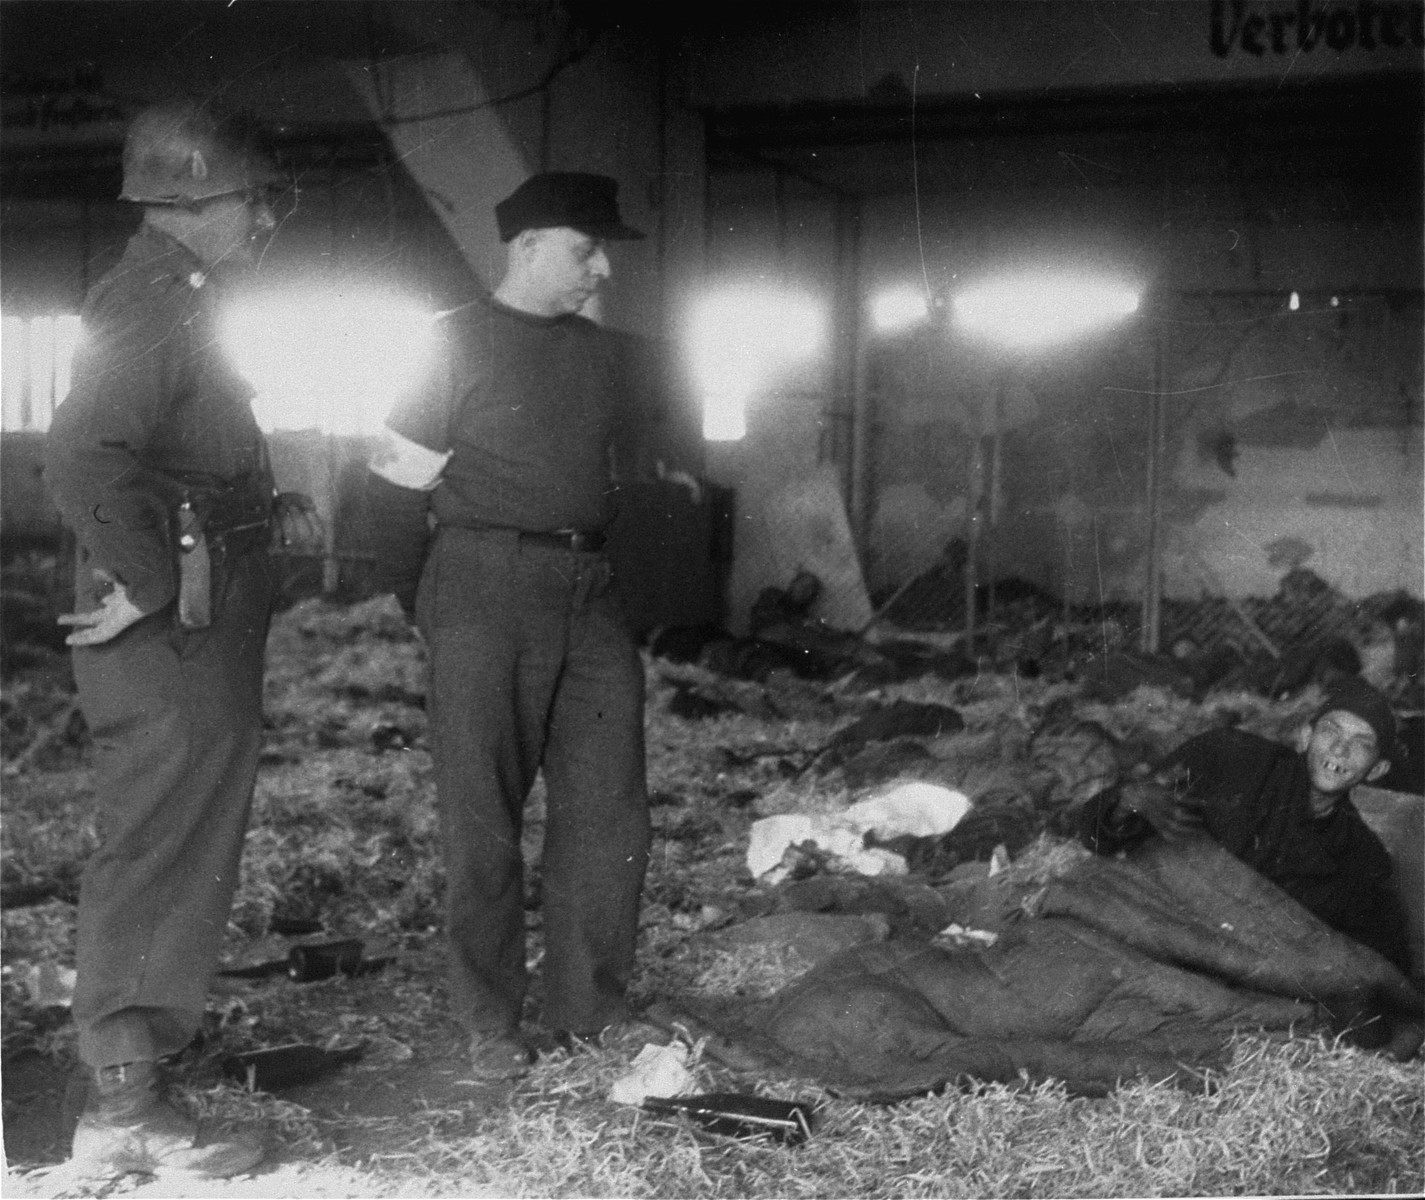 An American soldier and medical officer view the dead and the living in the barracks at the Nordhausen concentration camp.